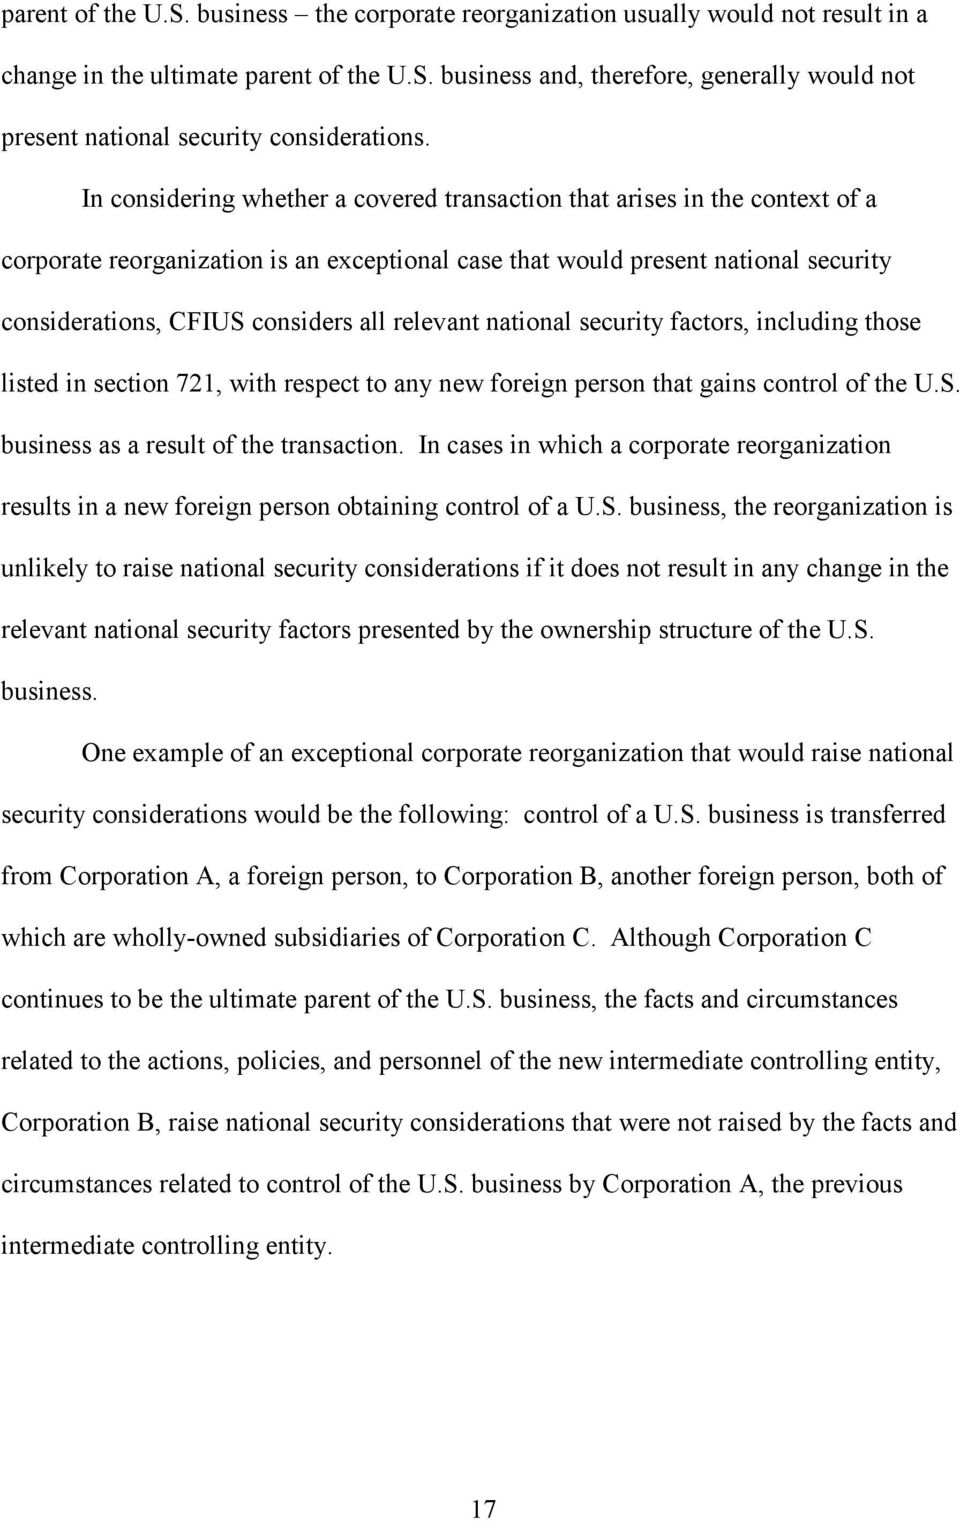 relevant national security factors, including those listed in section 721, with respect to any new foreign person that gains control of the U.S. business as a result of the transaction.